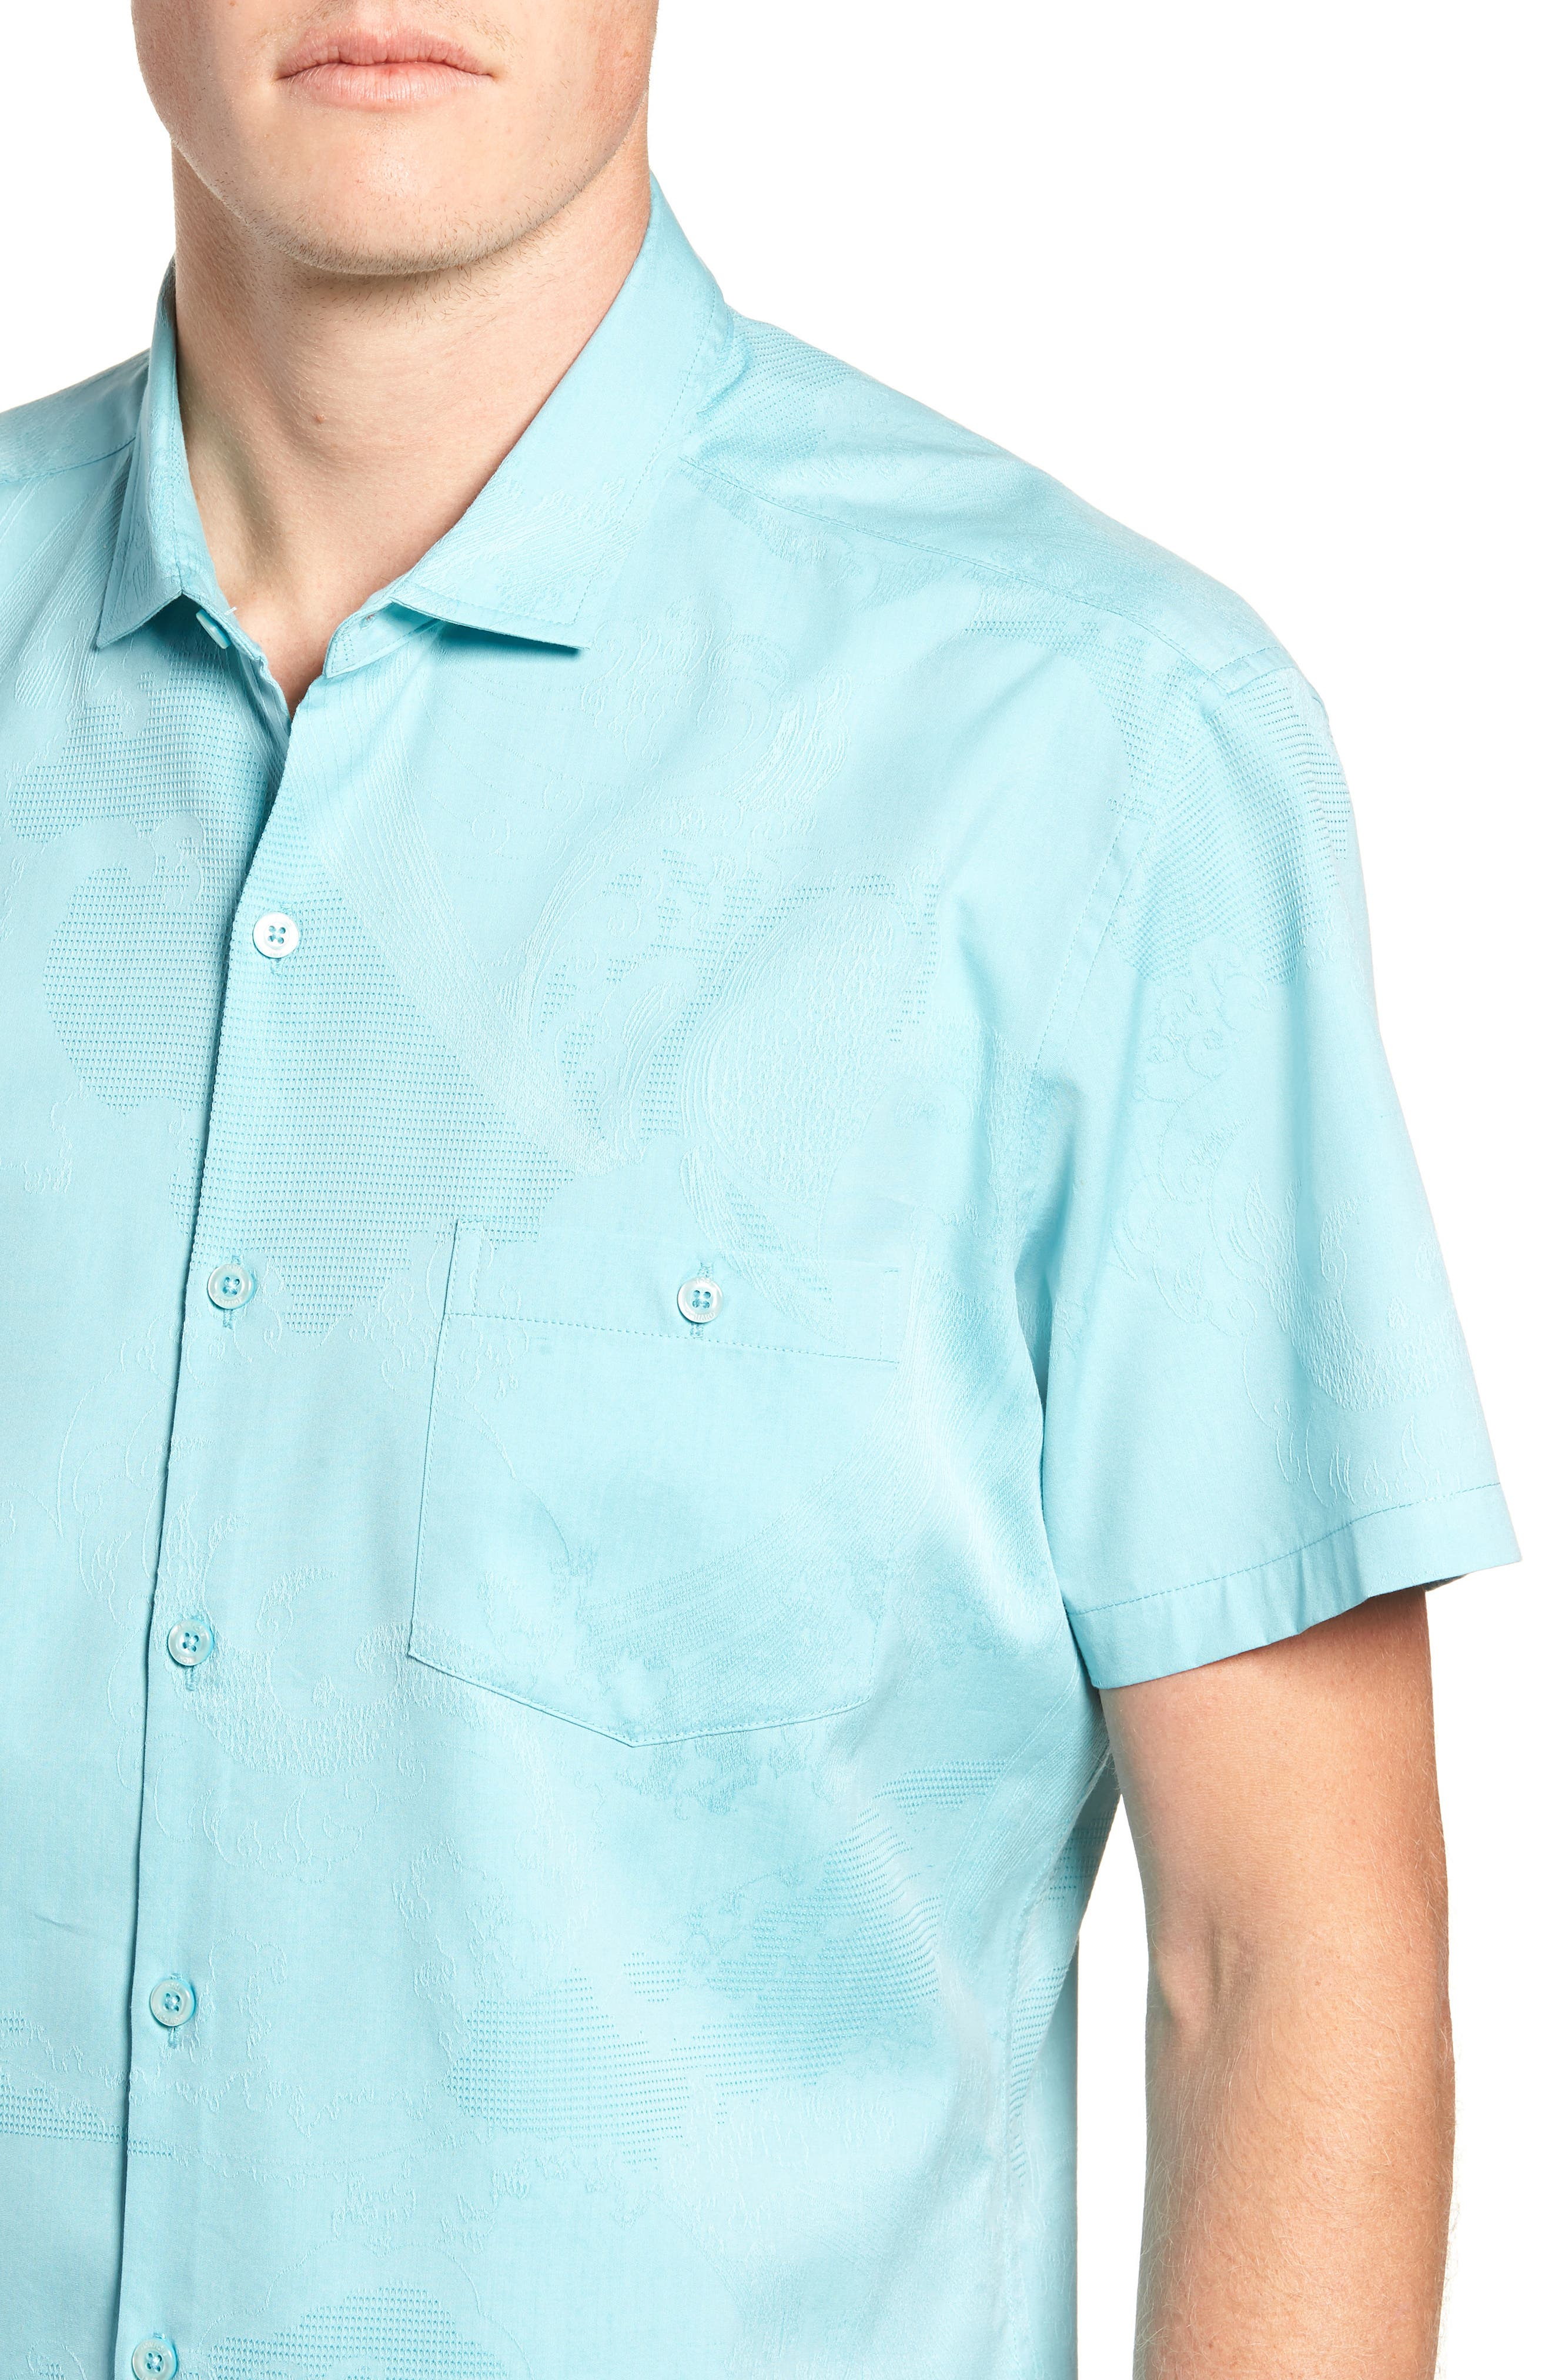 Seas the Day Trim Fit Camp Shirt,                             Alternate thumbnail 2, color,                             Surf